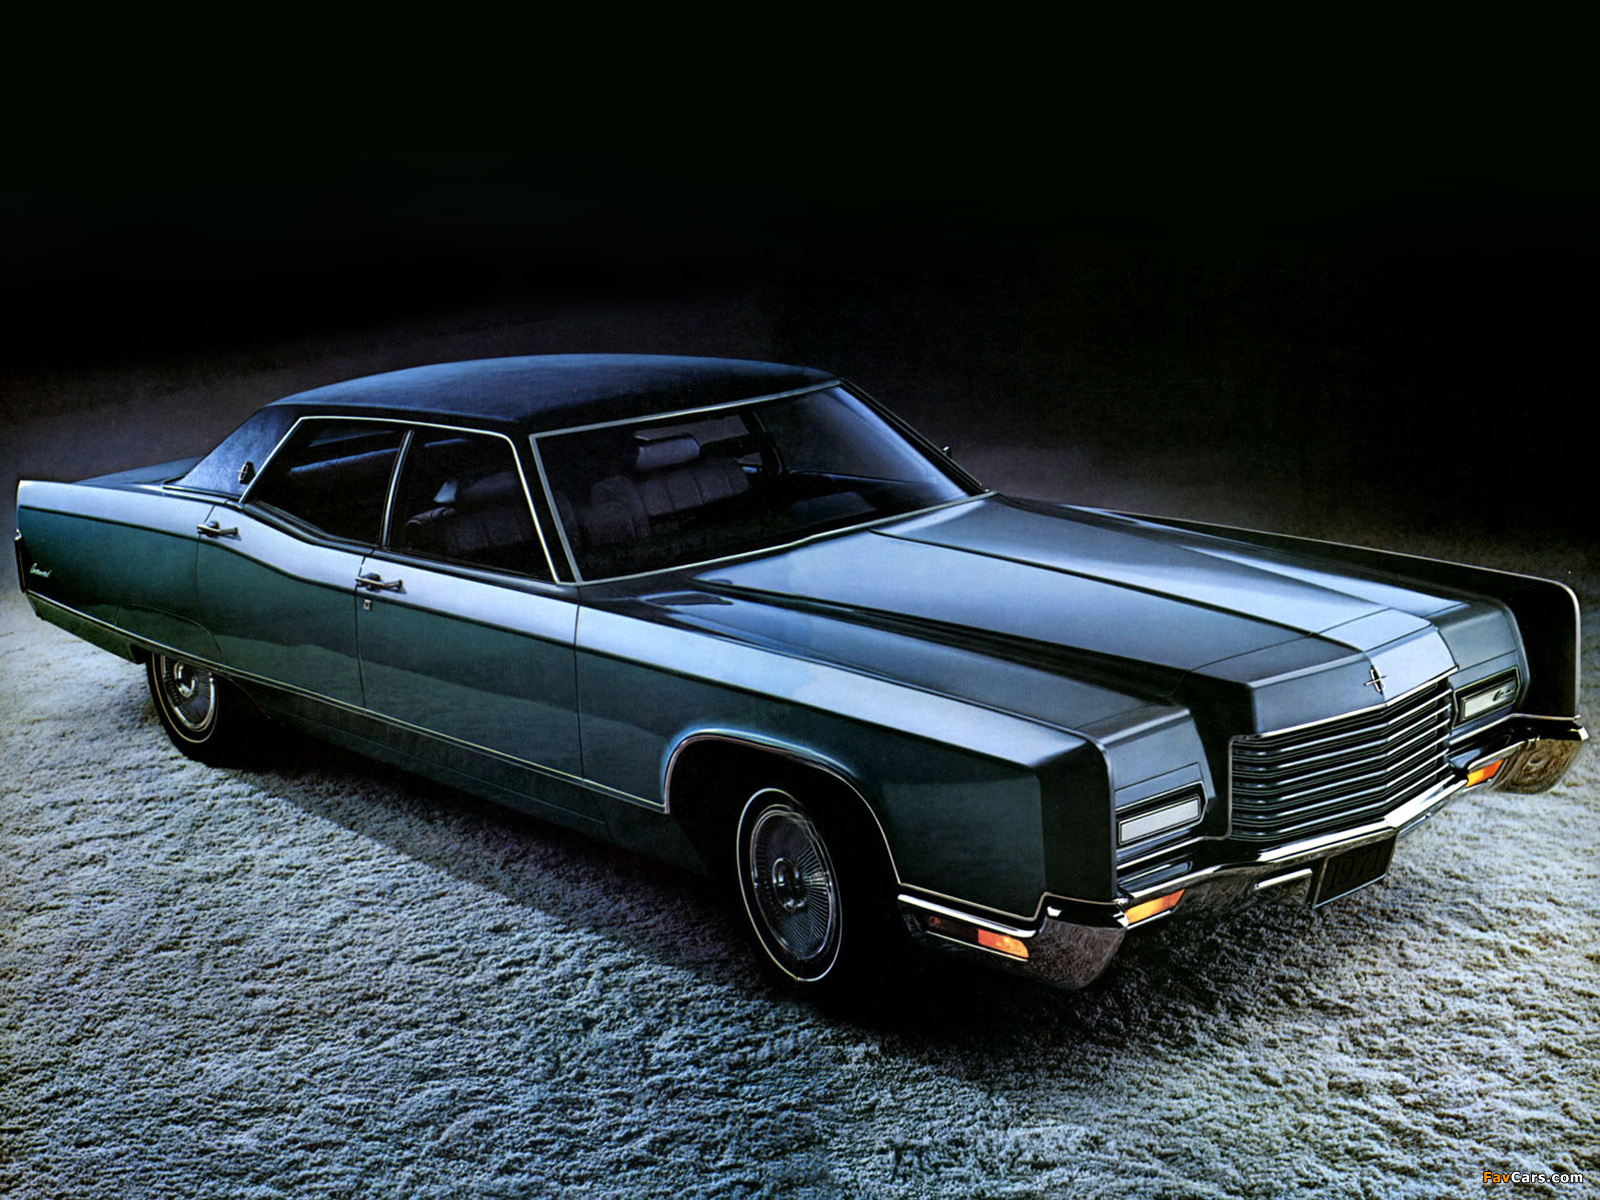 Lincoln Continental 1970 pictures (1600x1200)